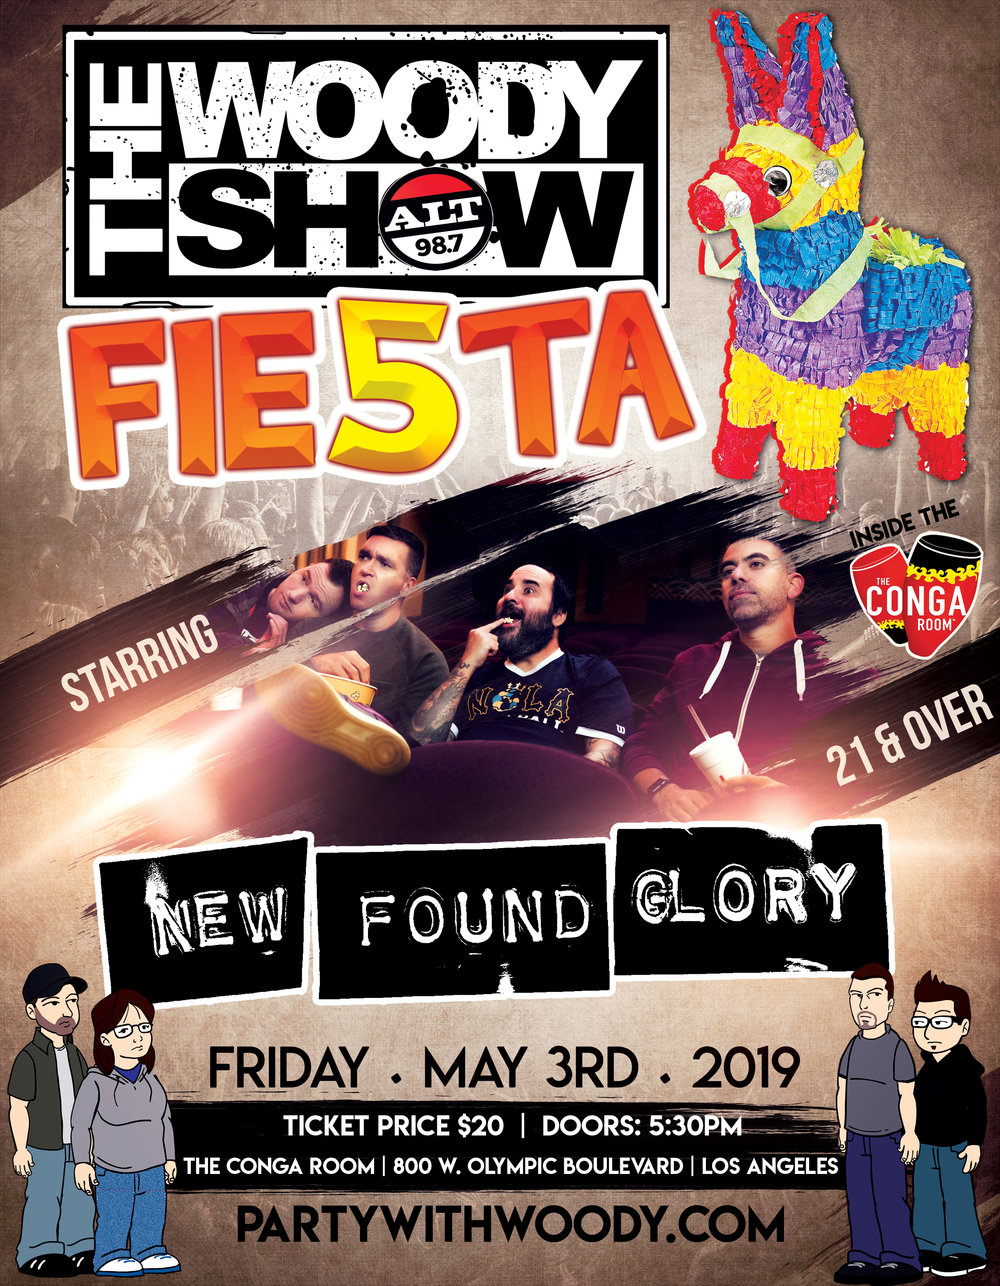 WOODY-SHOW-FIESTA---MAY-2019---EDITED.JPG